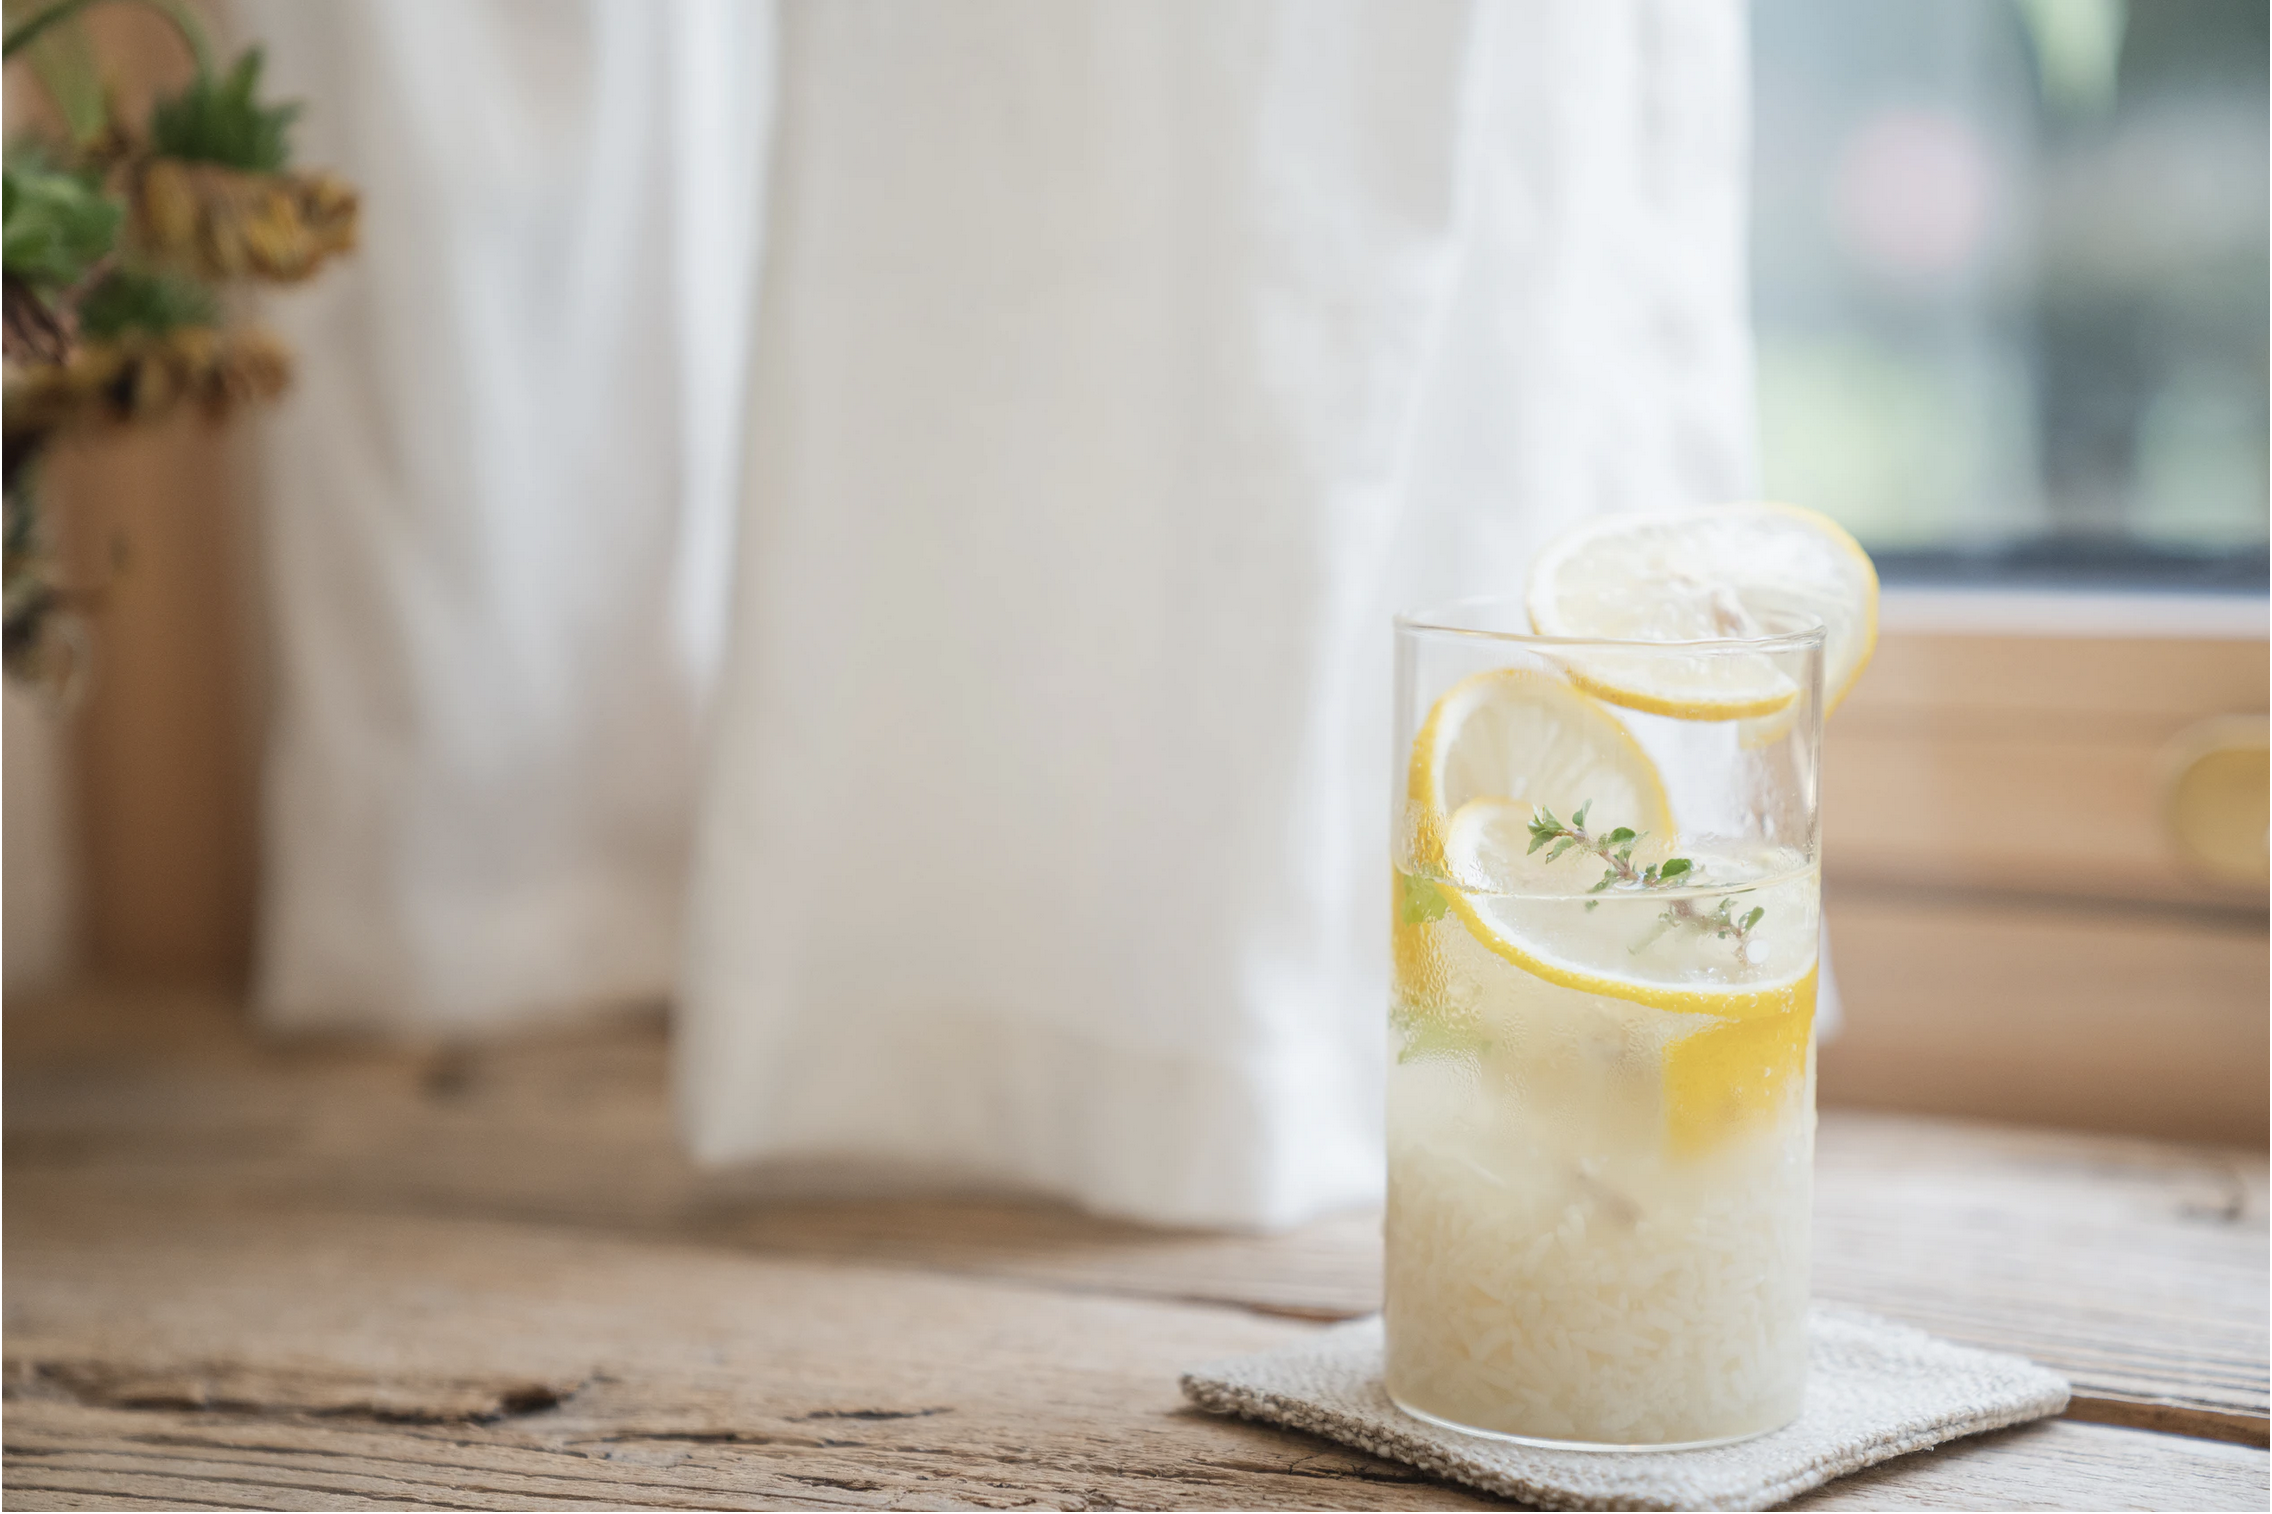 photo of lemonade in a glass on a window sill